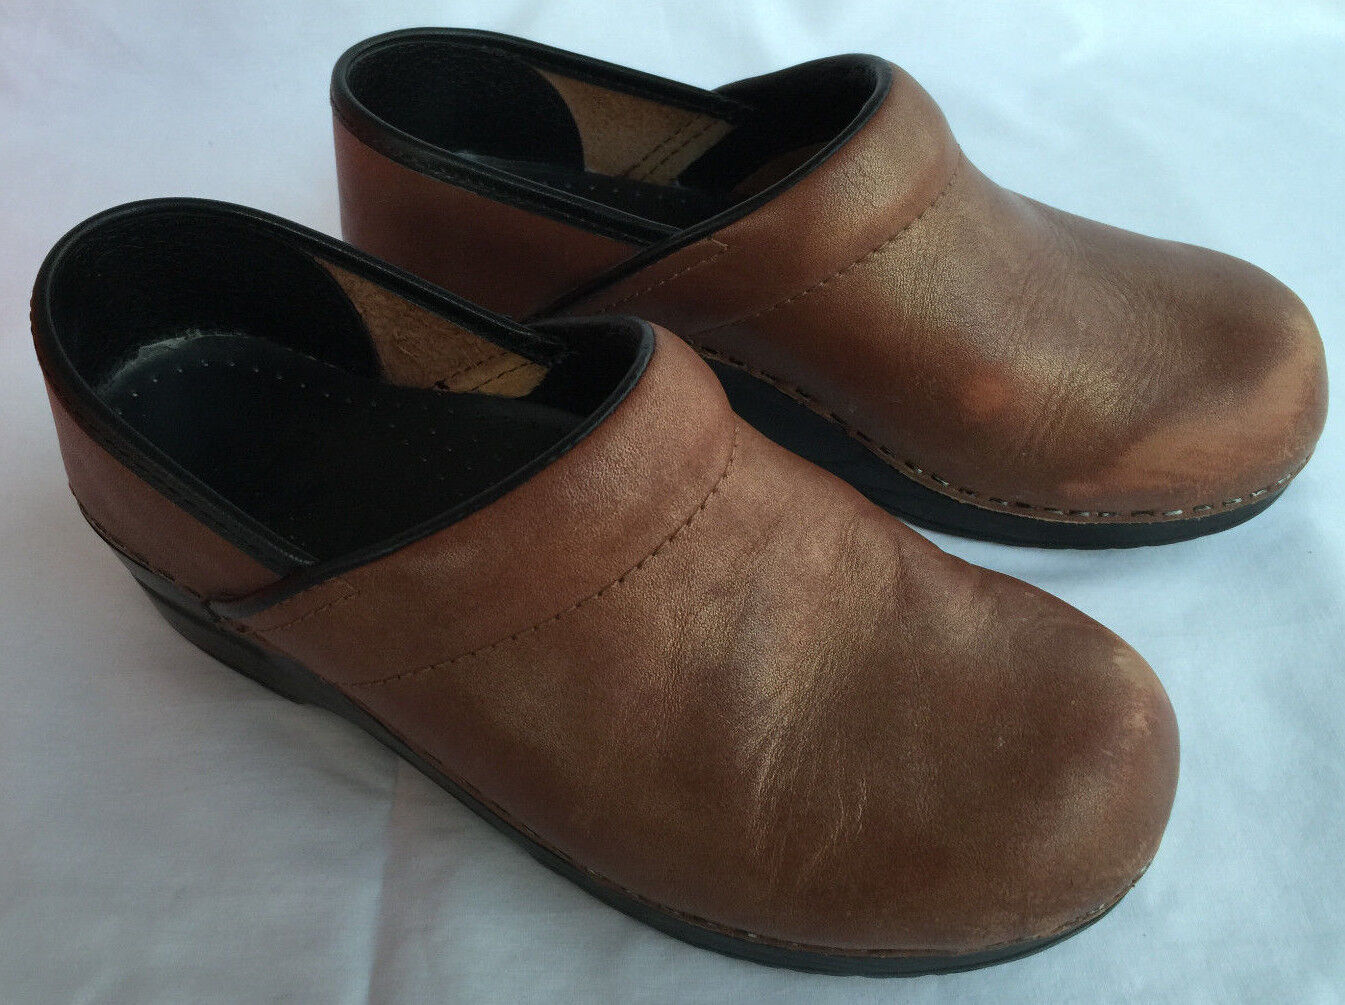 Dansko Professional Gold Leather Support Slip-On Clogs Shoes Women's 7